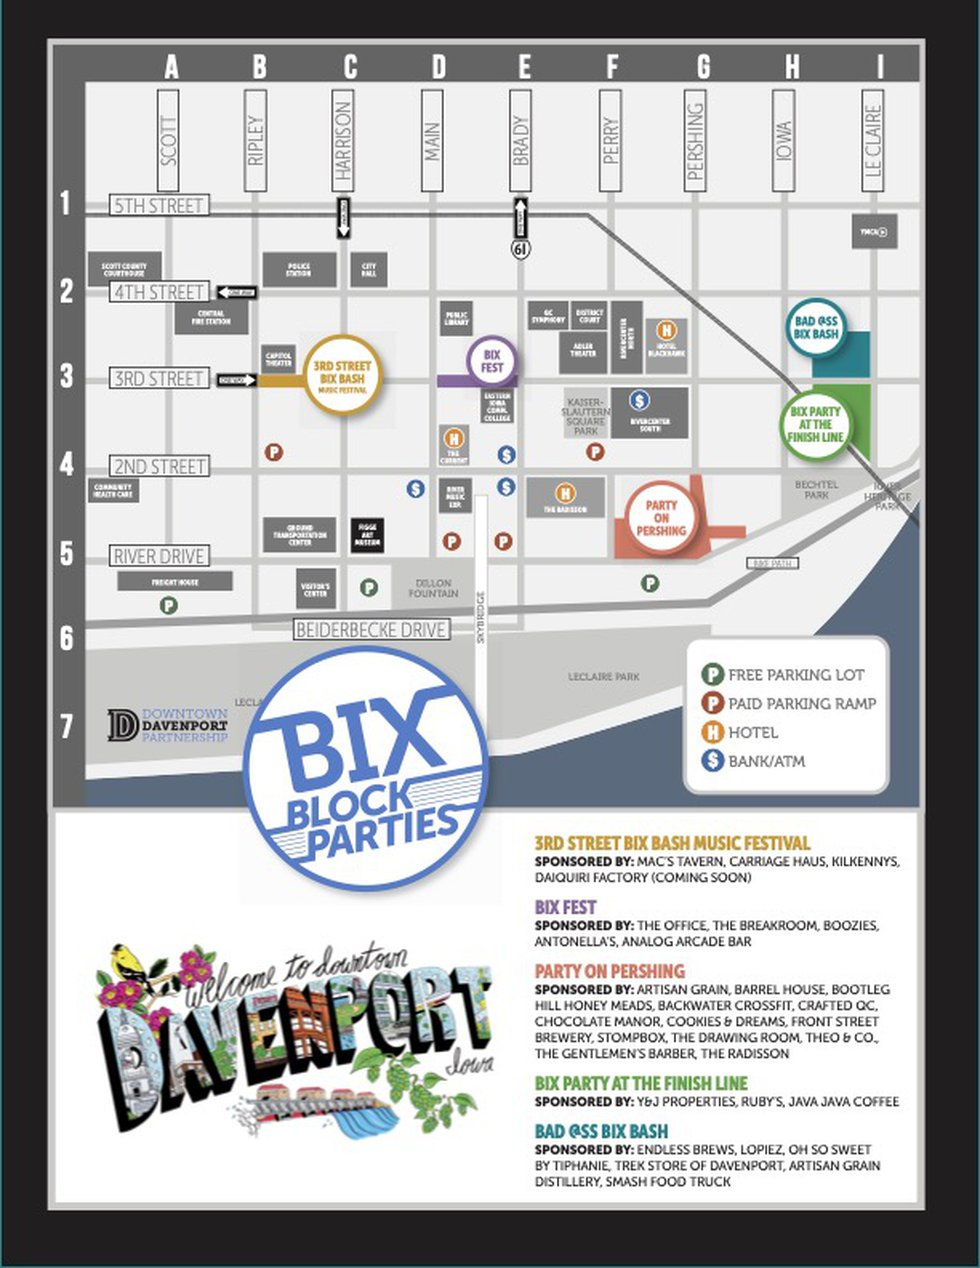 The Bix Block Party lineup has been announced ahead of the annual Bix weekend. City officials...